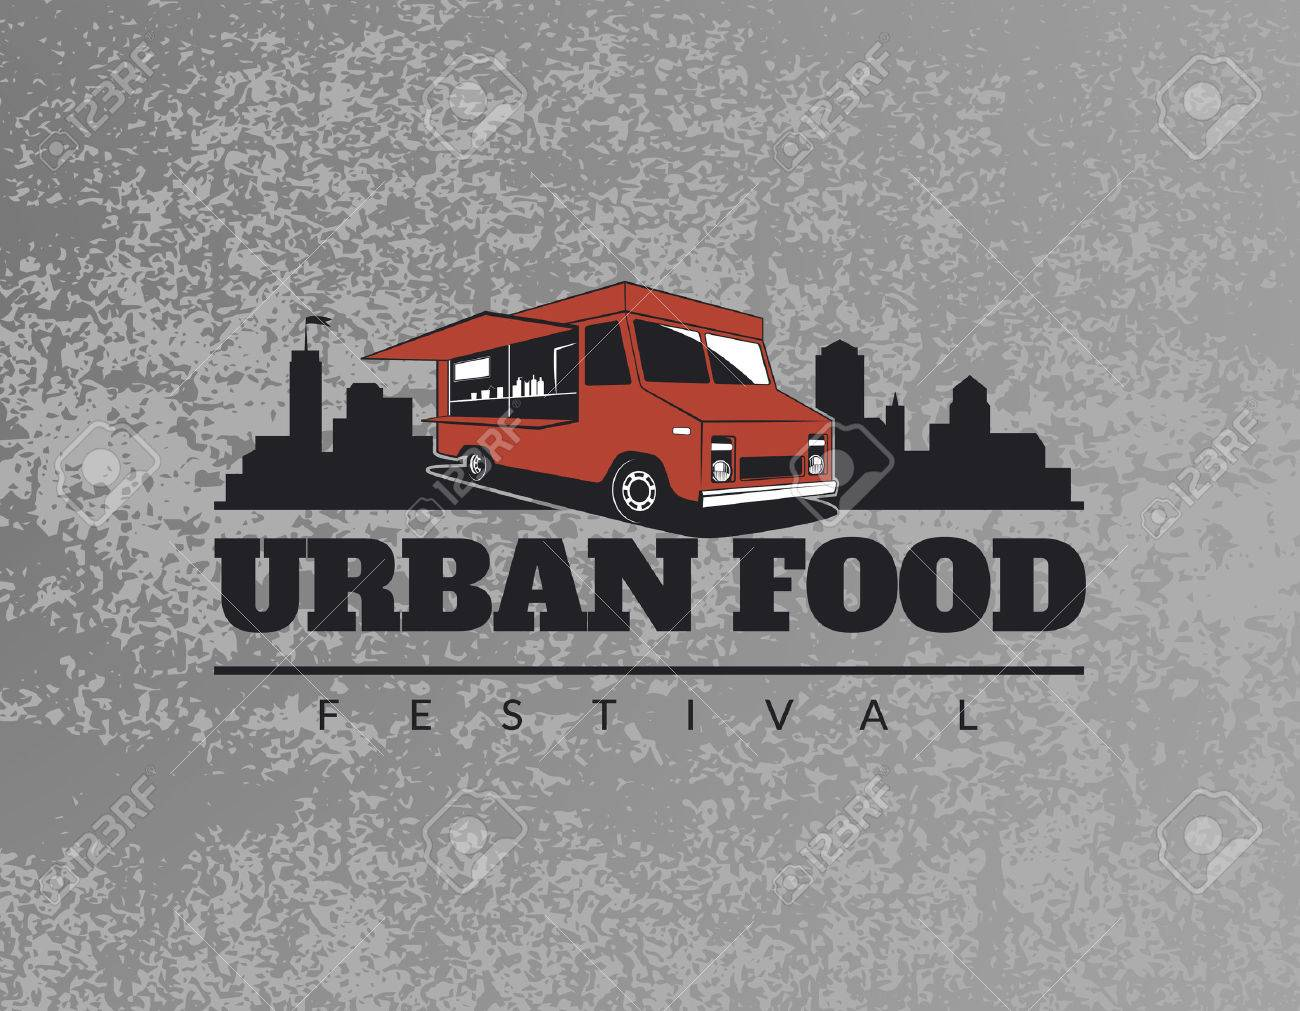 Food truck emblem on grunge grey background. Urban, street food illustrations and graphics. Stock Vector - 47713234